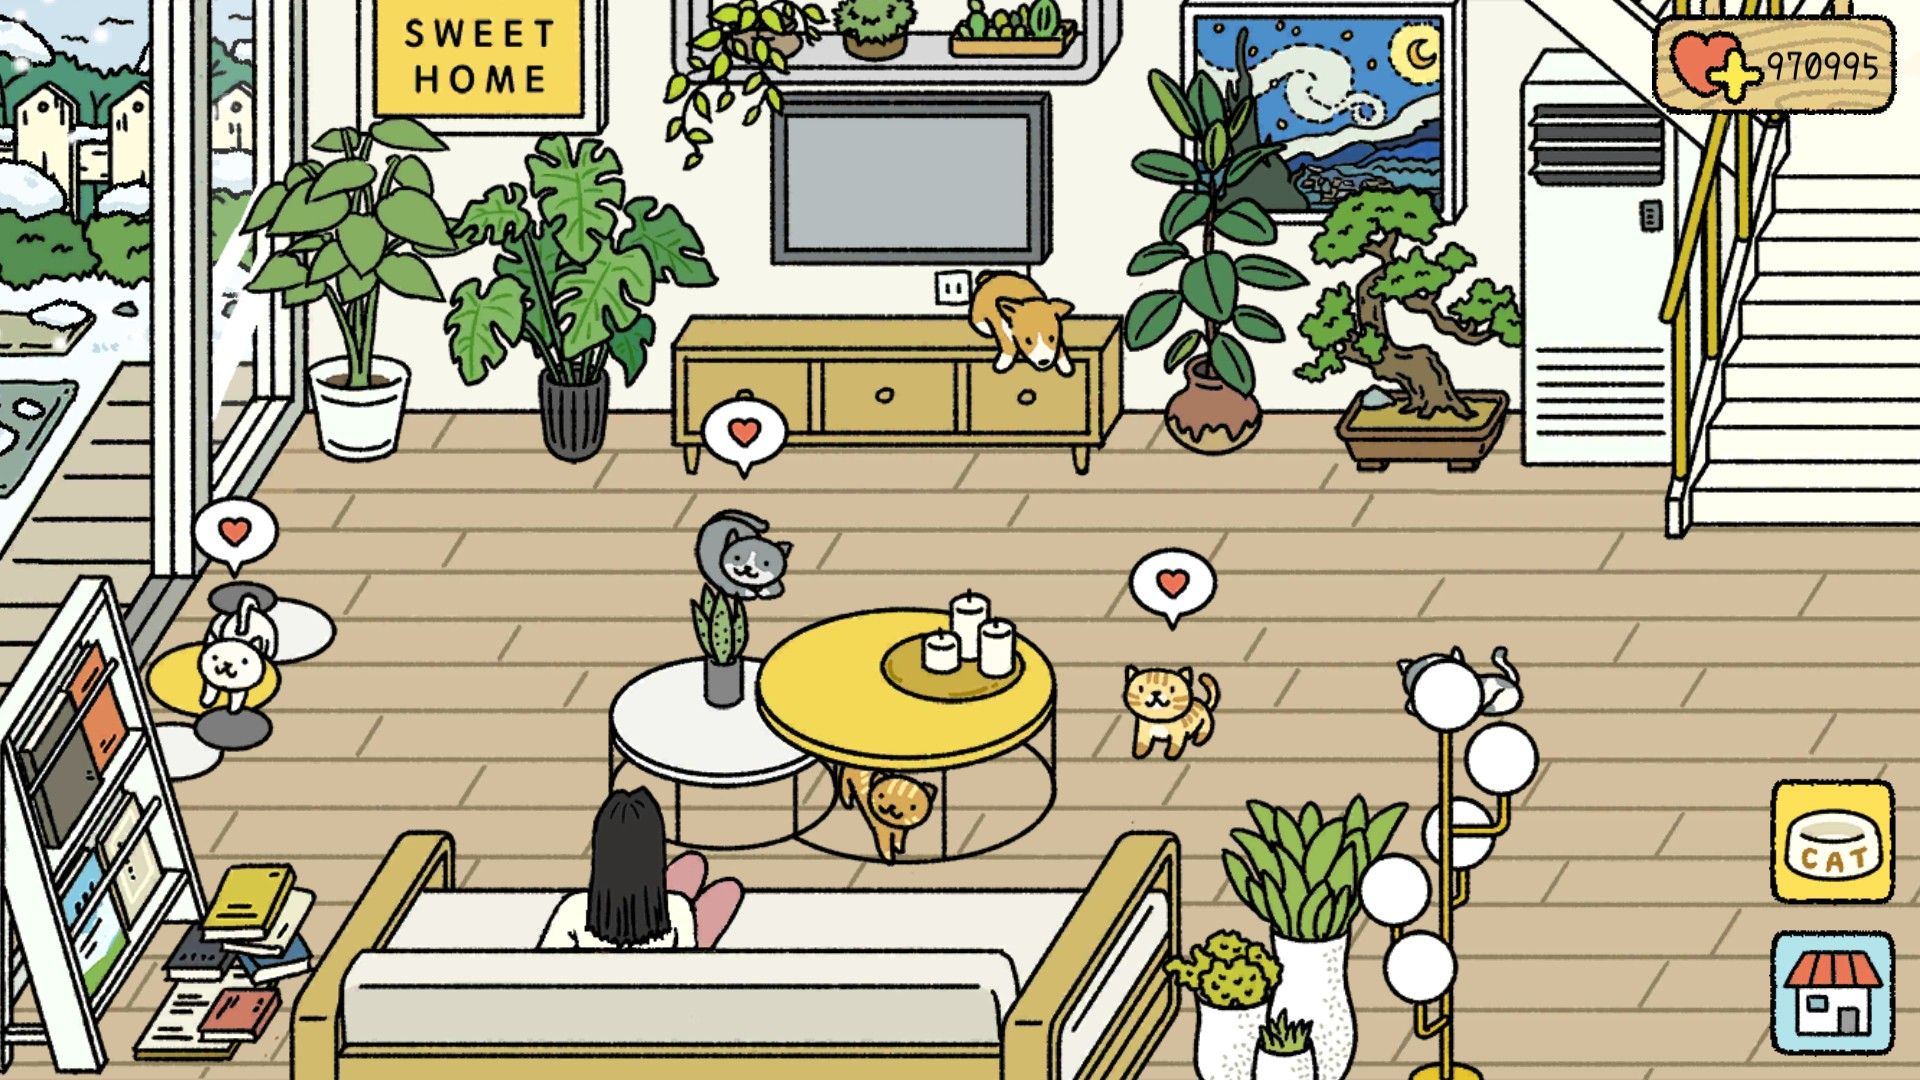 21+ Best Adorable home game images in 21  adorable, gaming